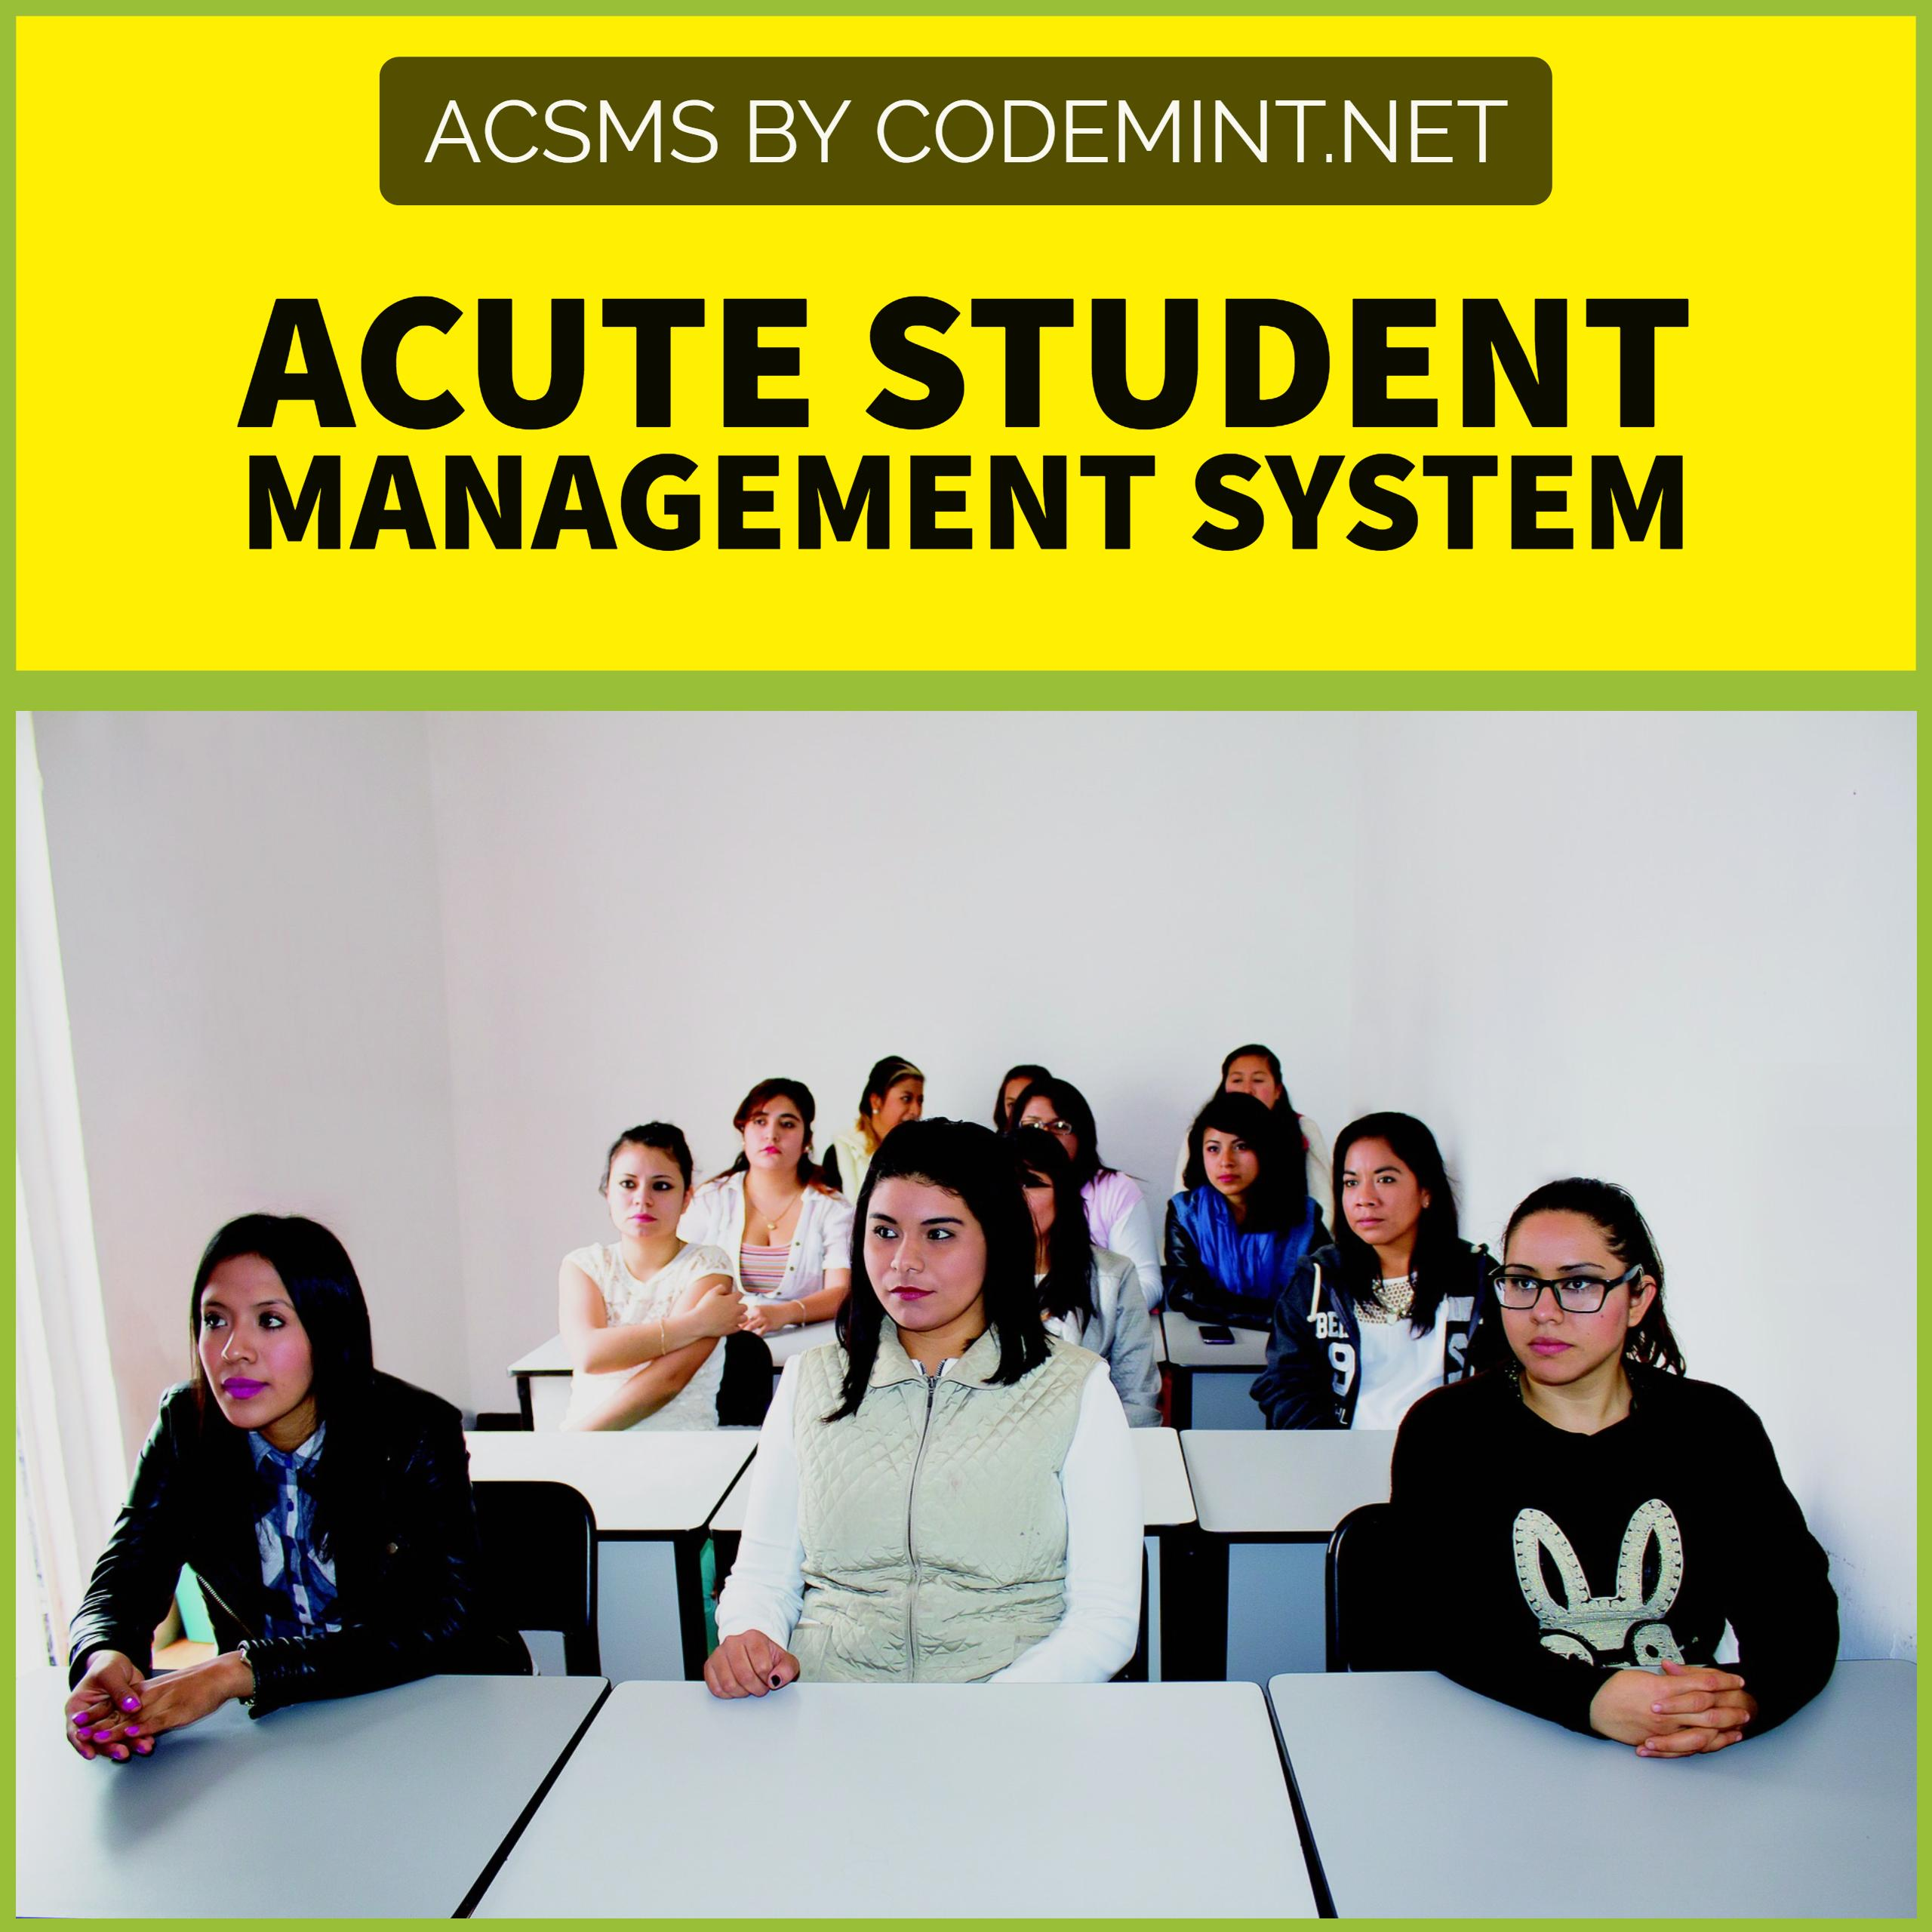 AcSMS - Acute Student Management System (Design and Implementation)